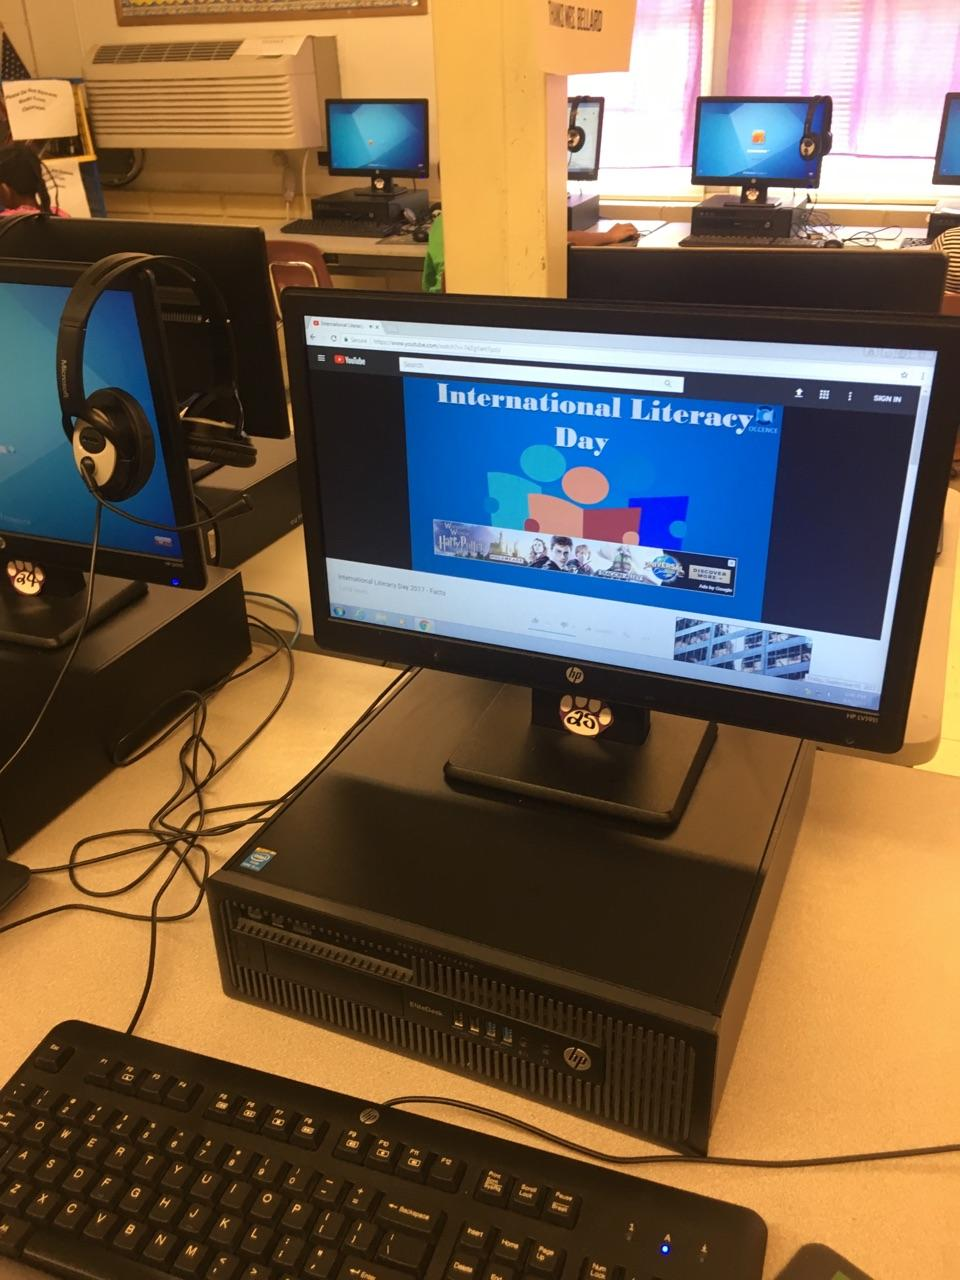 Mrs. Bellard shared a video about International Literacy Day with her students in the computer lab on International Literacy Day.